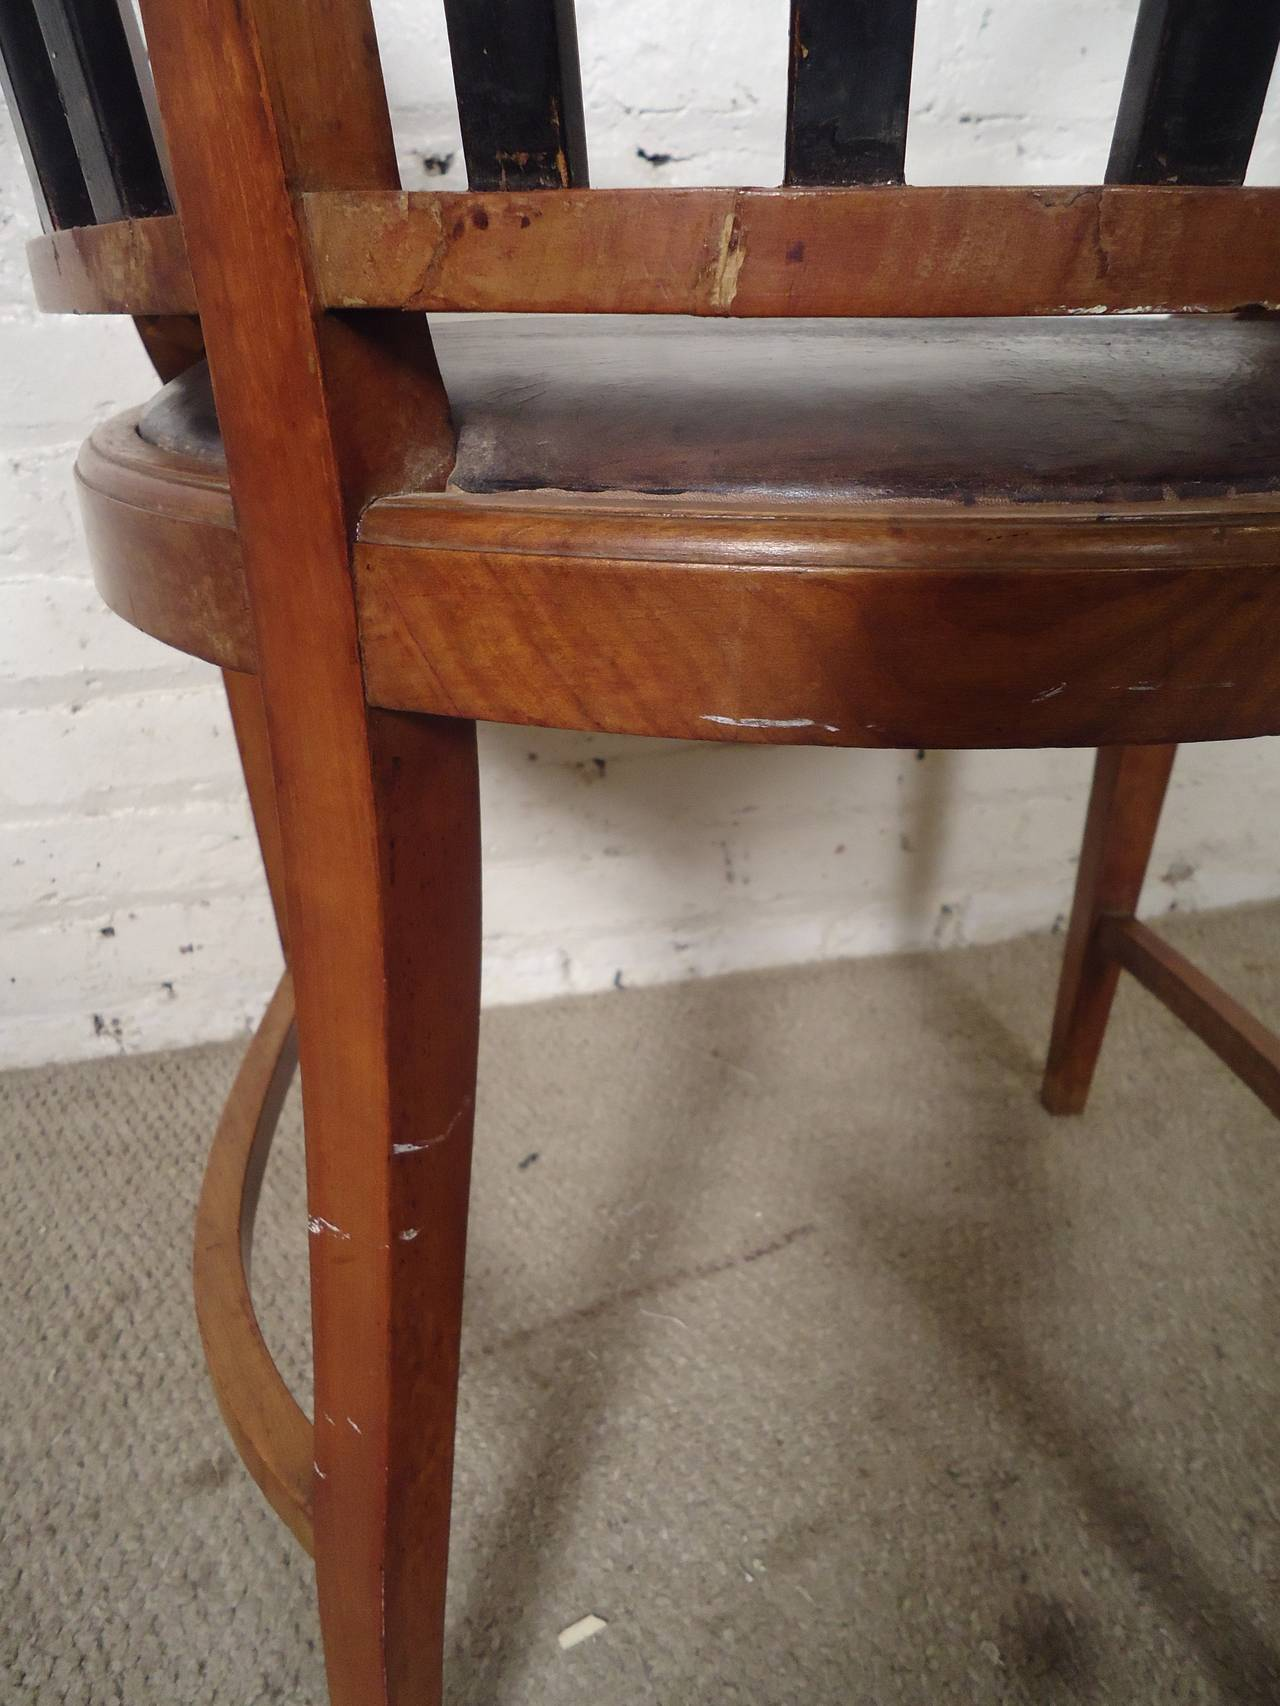 Unique Vintage Round Back Spindle Chair 3 - Unique Vintage Round Back Spindle Chair For Sale At 1stdibs